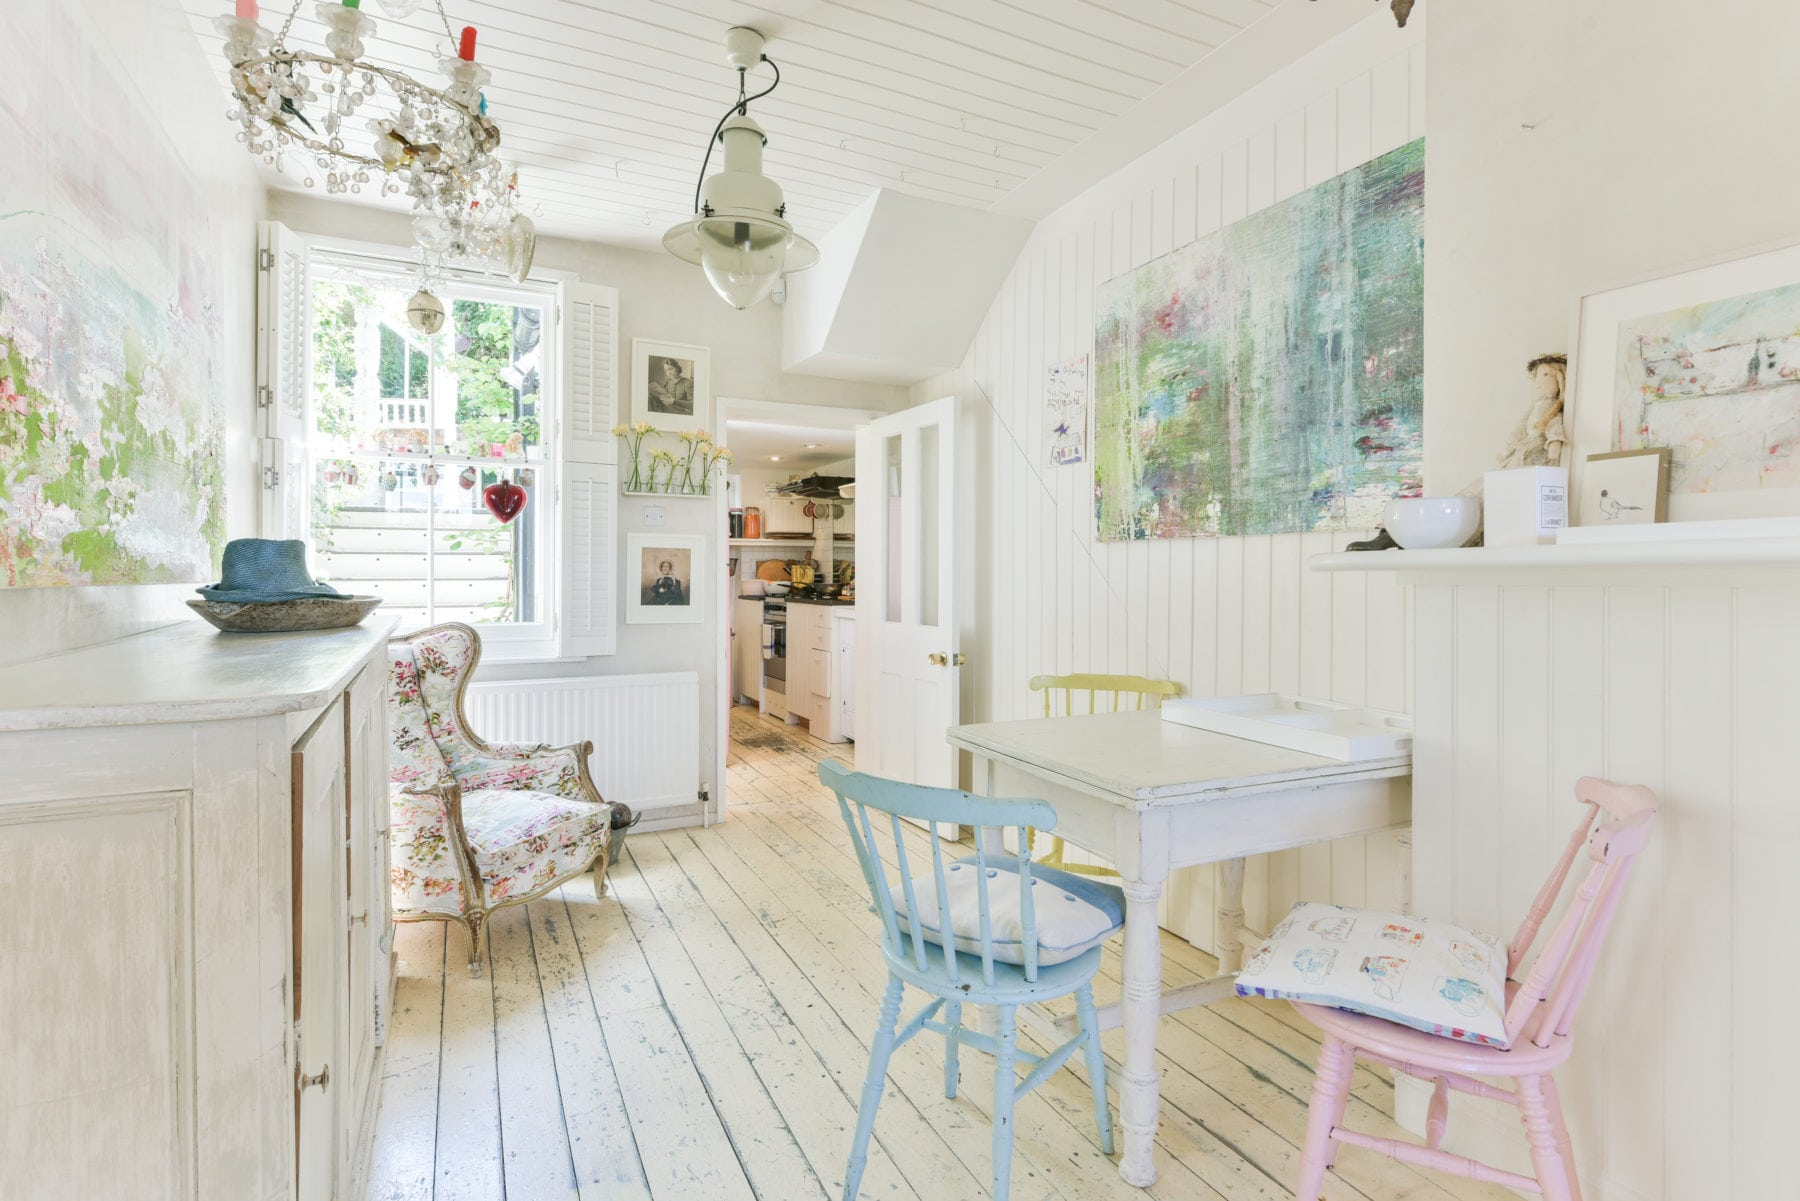 British Artist Jessica Zoob rents out her Lewes Home via Airbnb